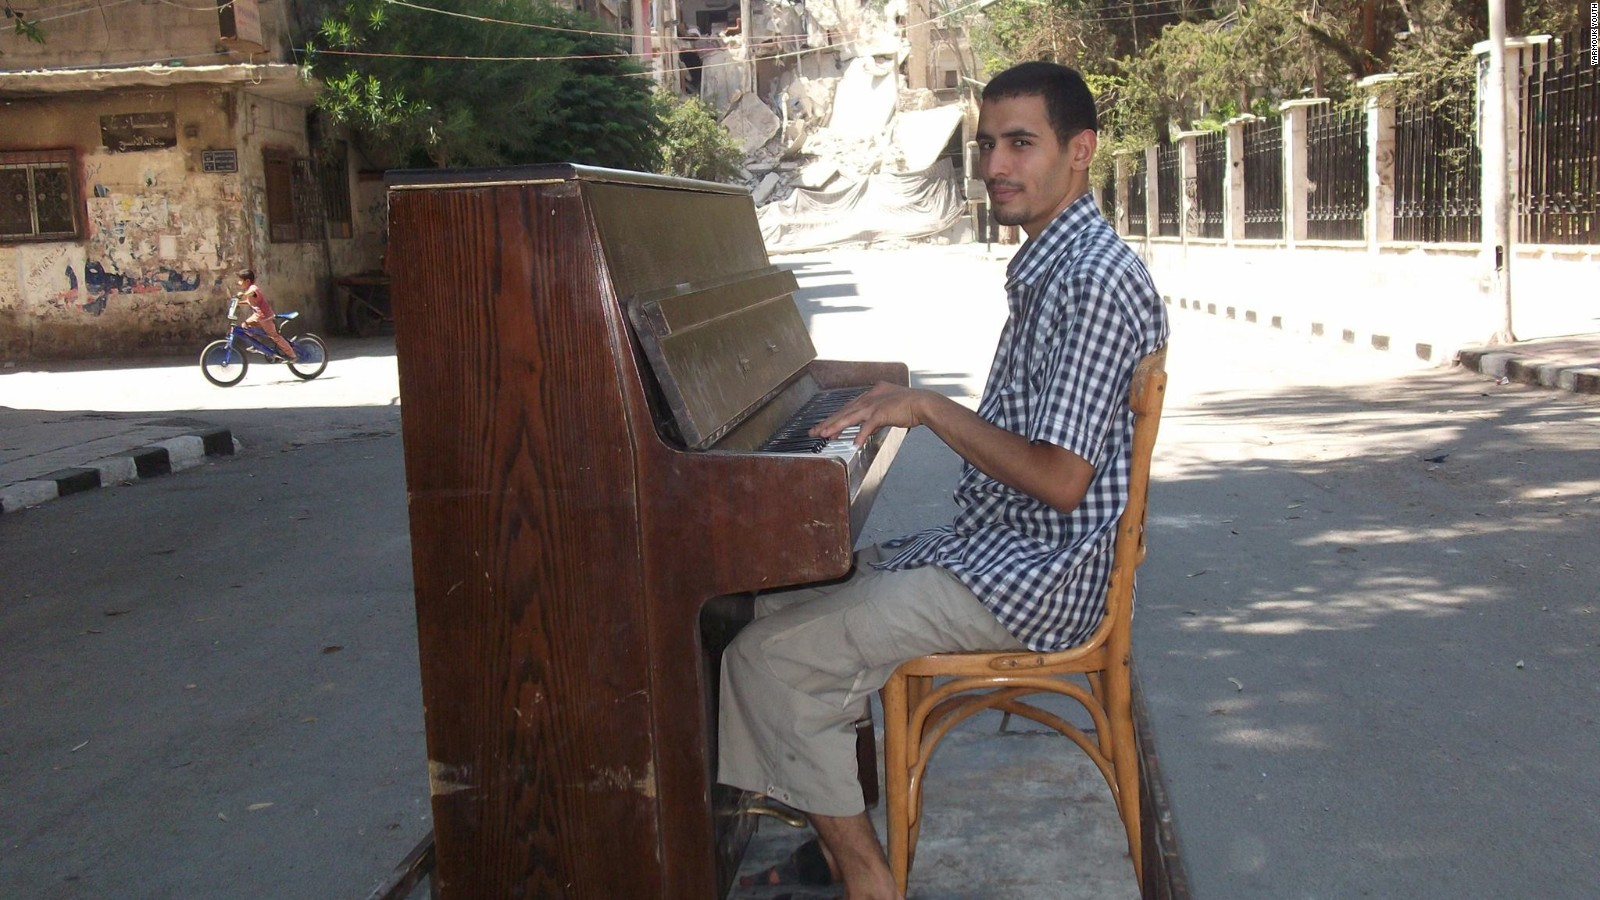 ISIS tried to silence him, but pianist won't stay quiet